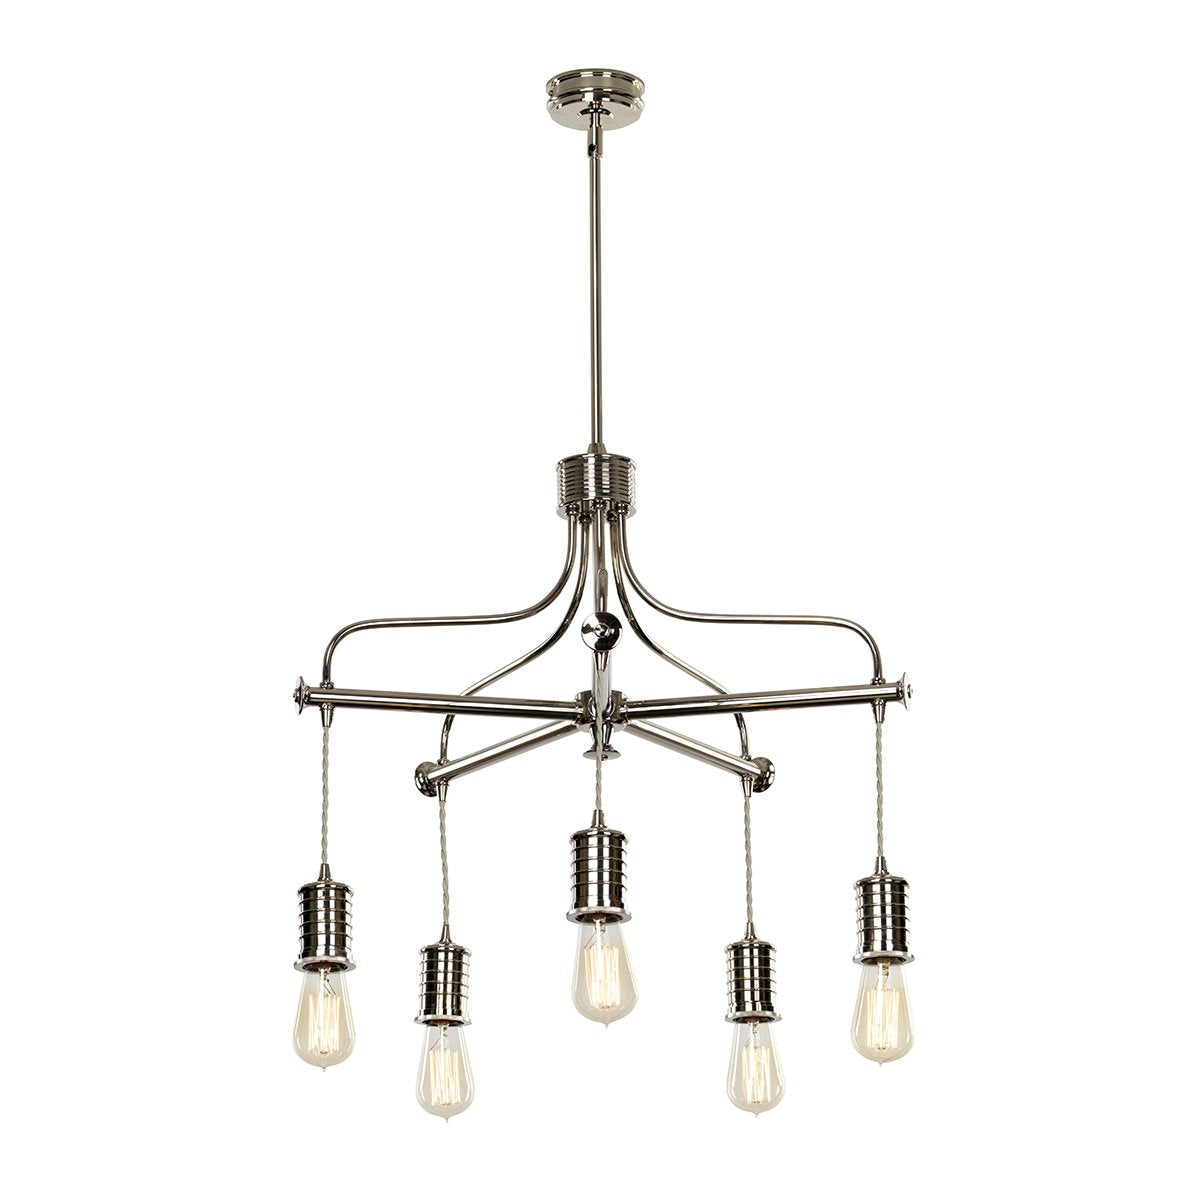 Five Light Polished Nickel Chandelier